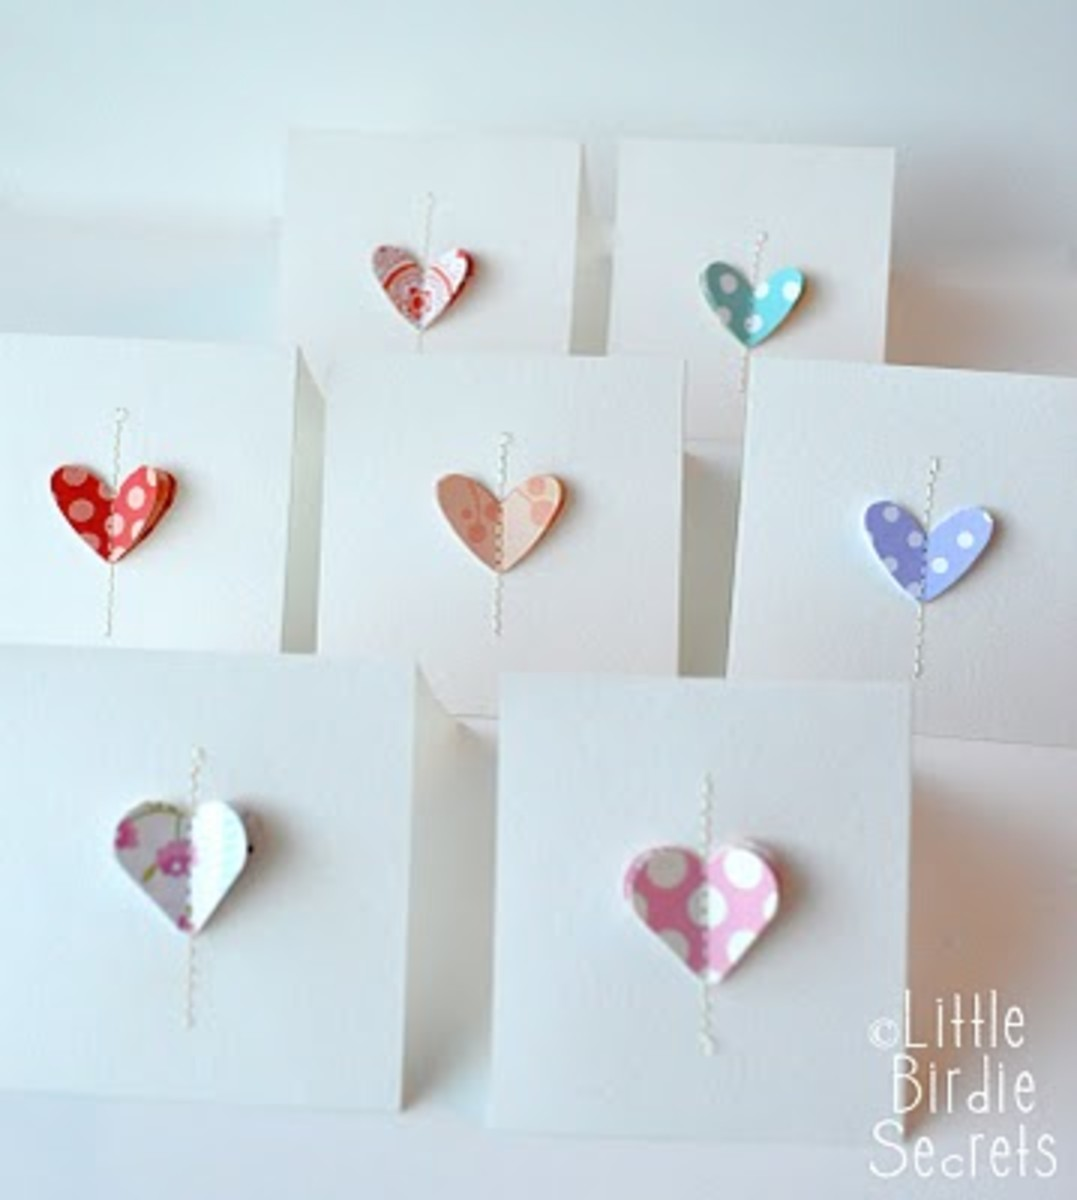 Stitched Paper Heart Valentines Cards